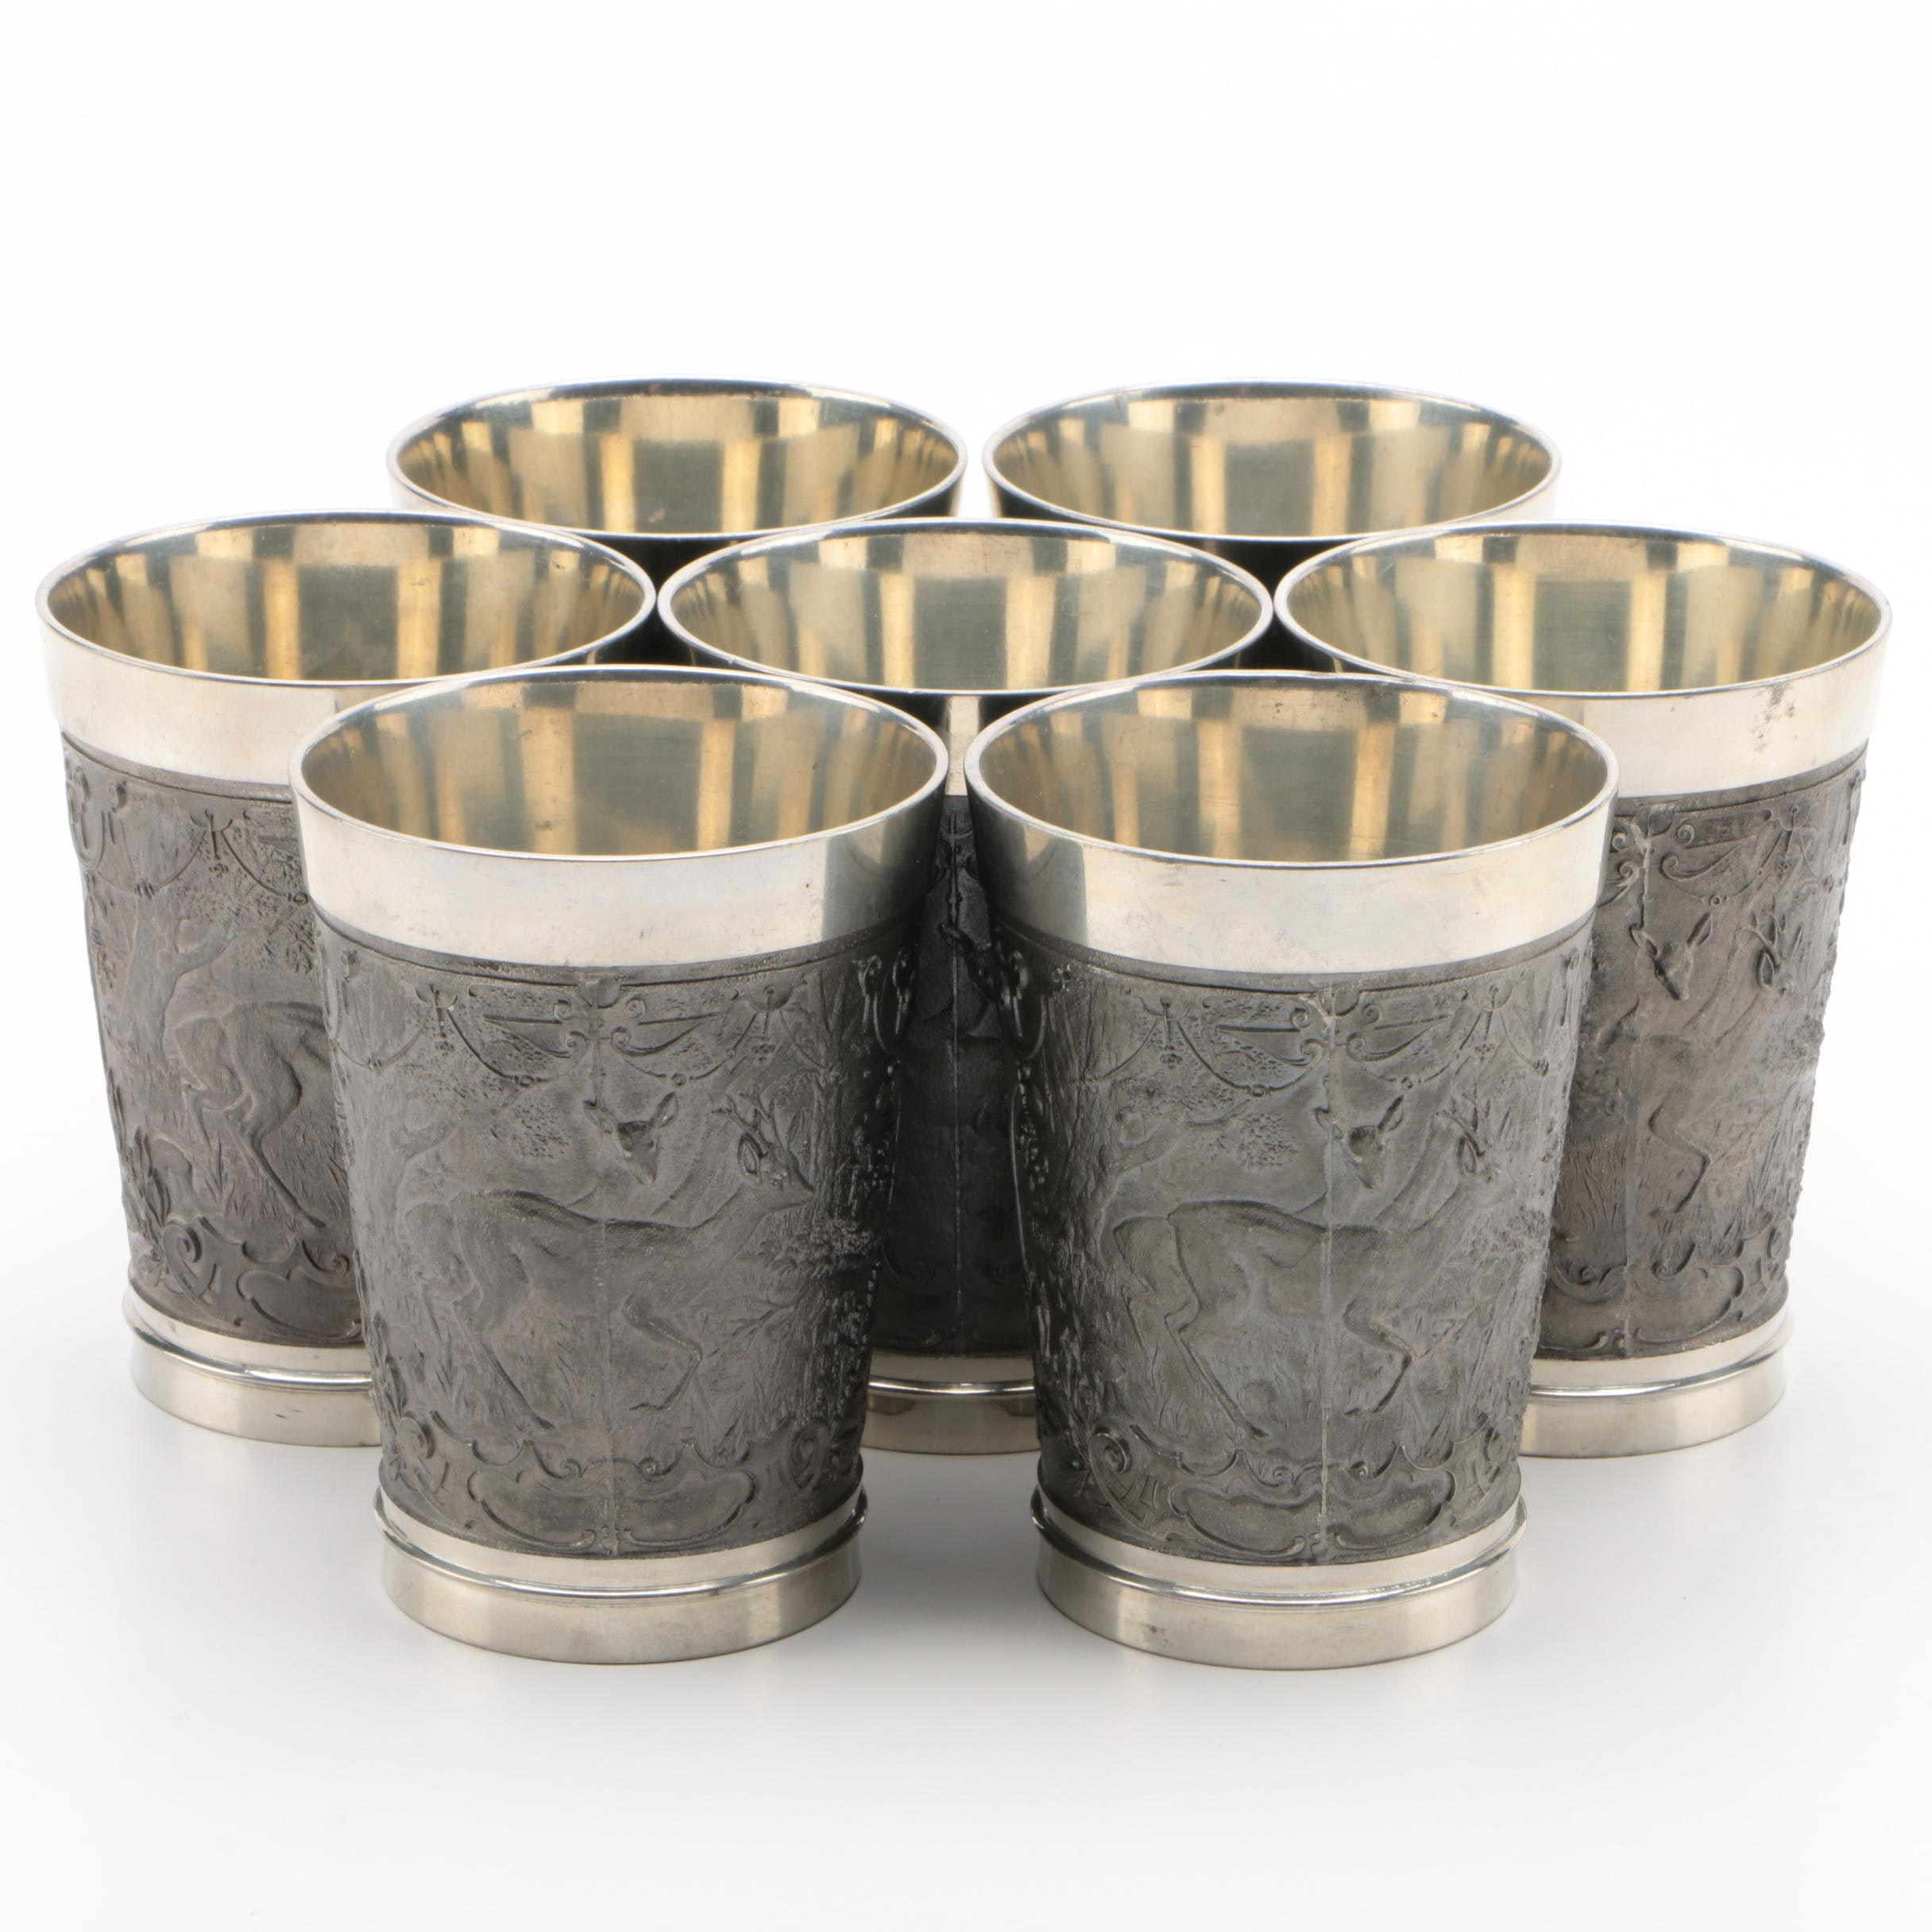 West Germany Pewter Plate Tumblers with Hunting Scenes in Relief, Set of Seven